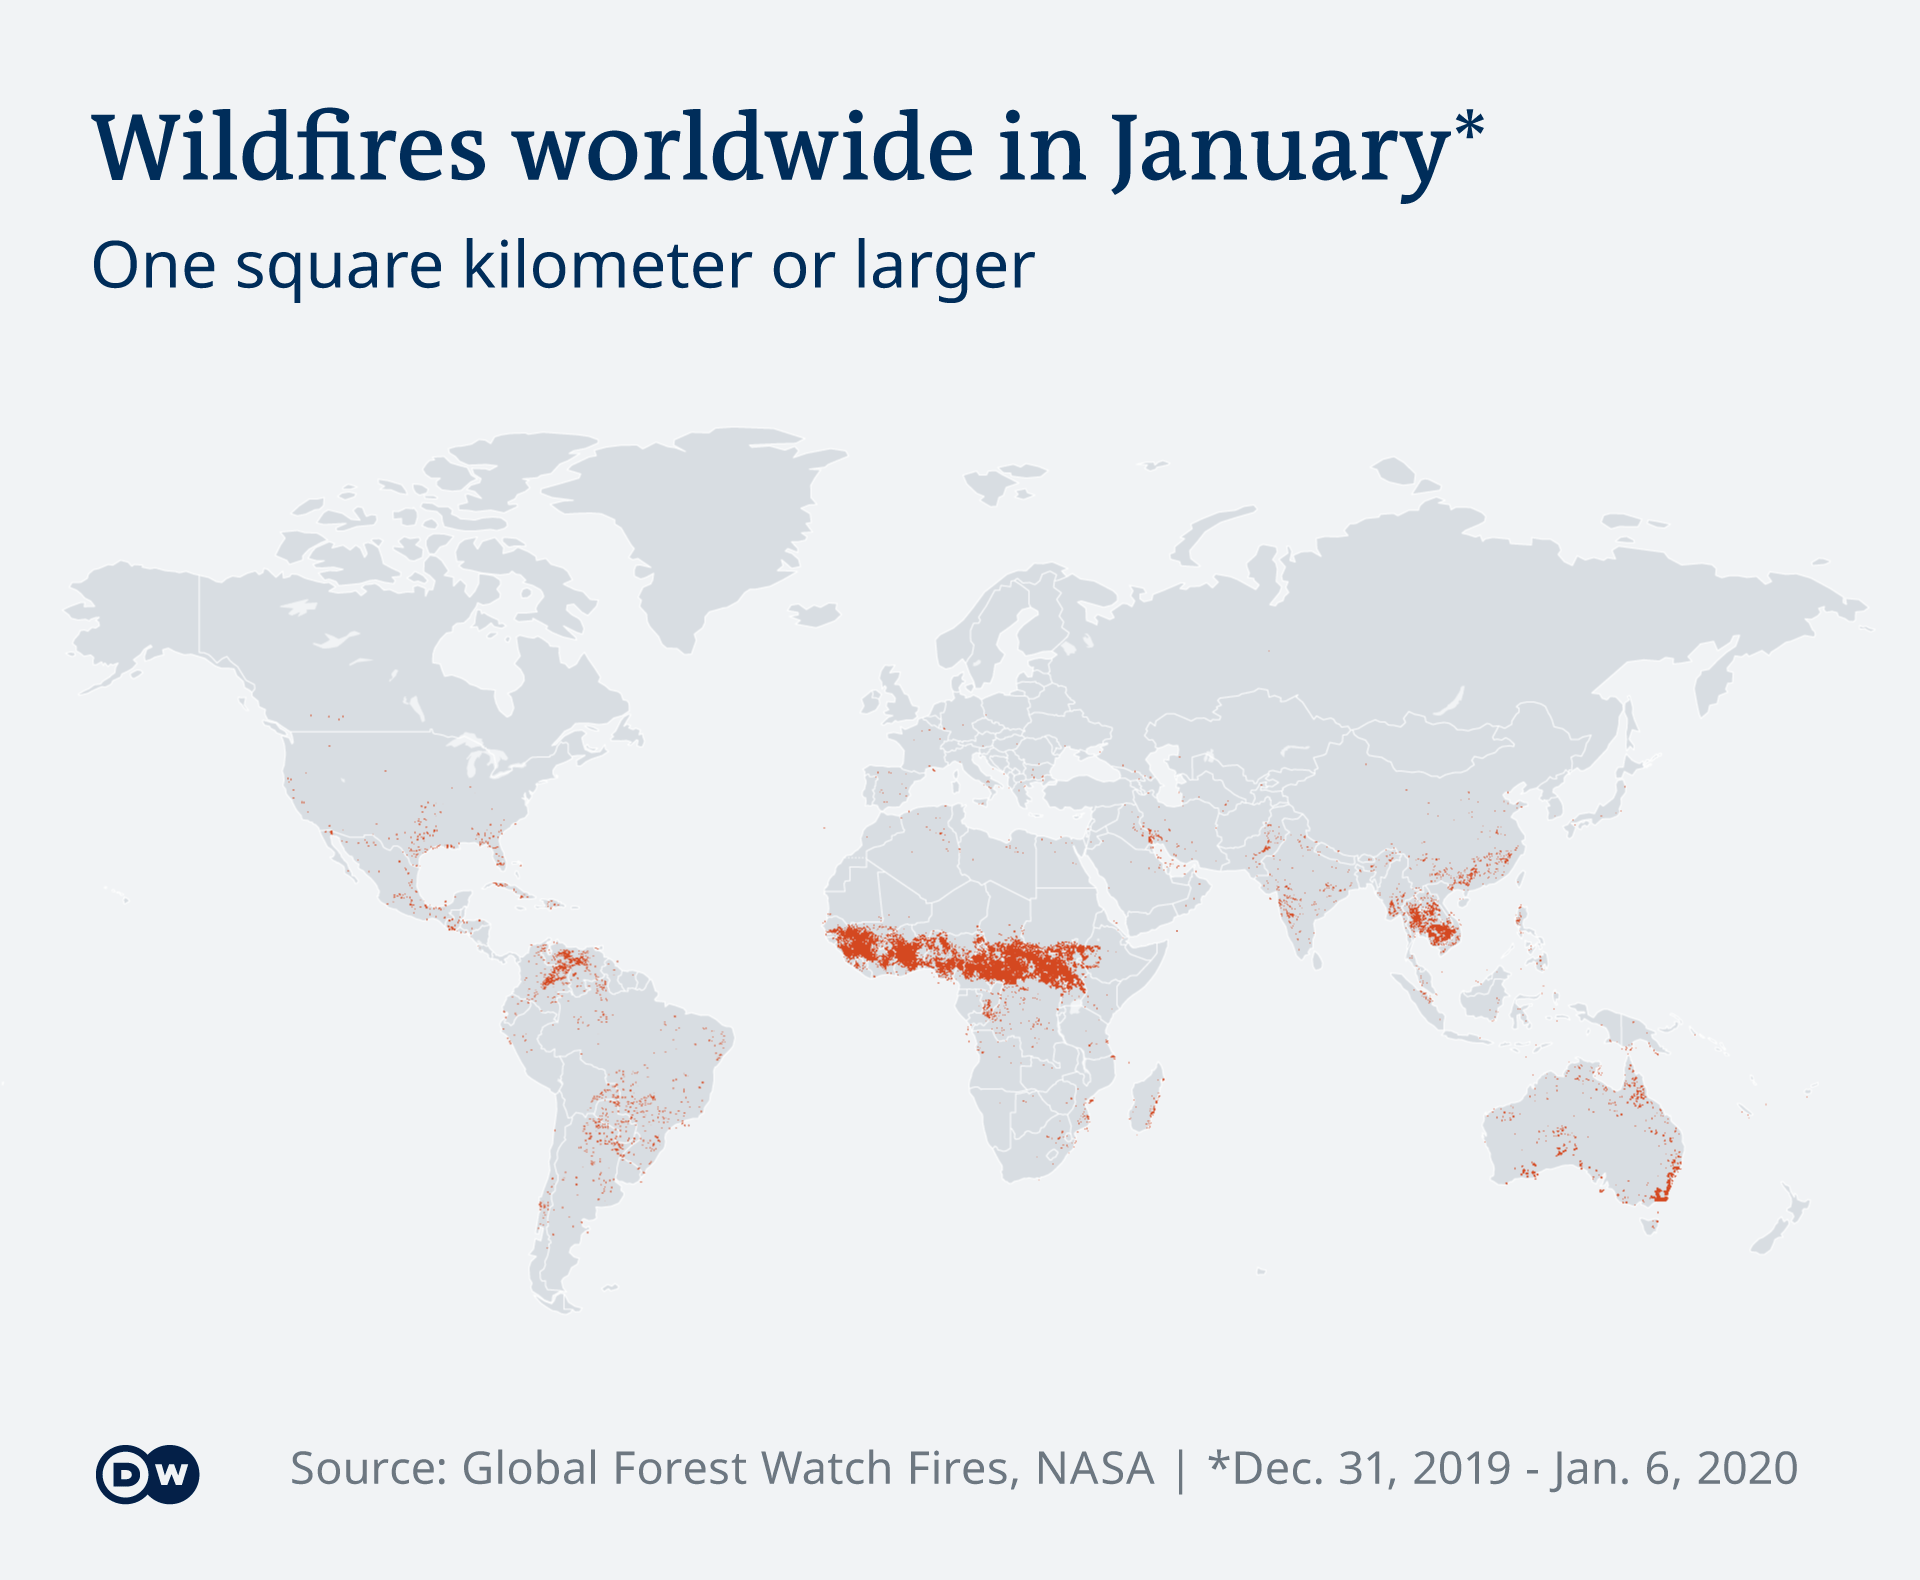 Infographic illustrating spread of wildfires globally and a predominance of fires in Africa from December 31, 2019 to January 6, 2020 (DW)